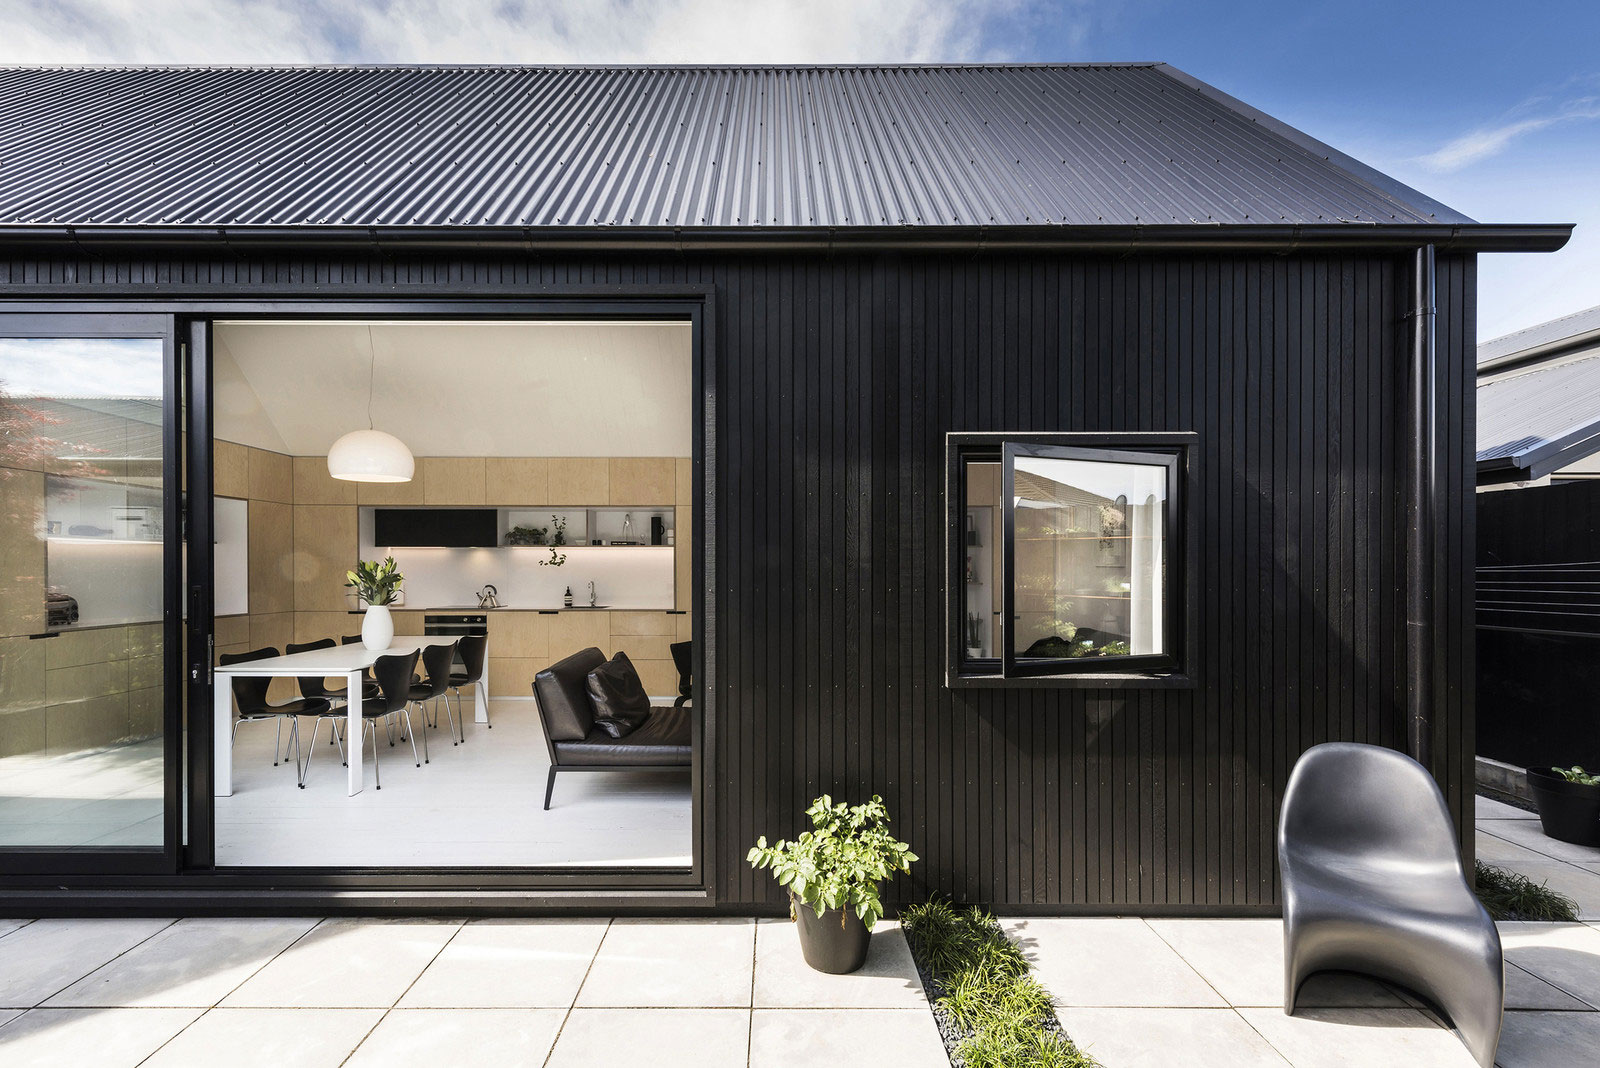 Small house in new zealand designed by colab arquitectura for Christchurch architecture firms